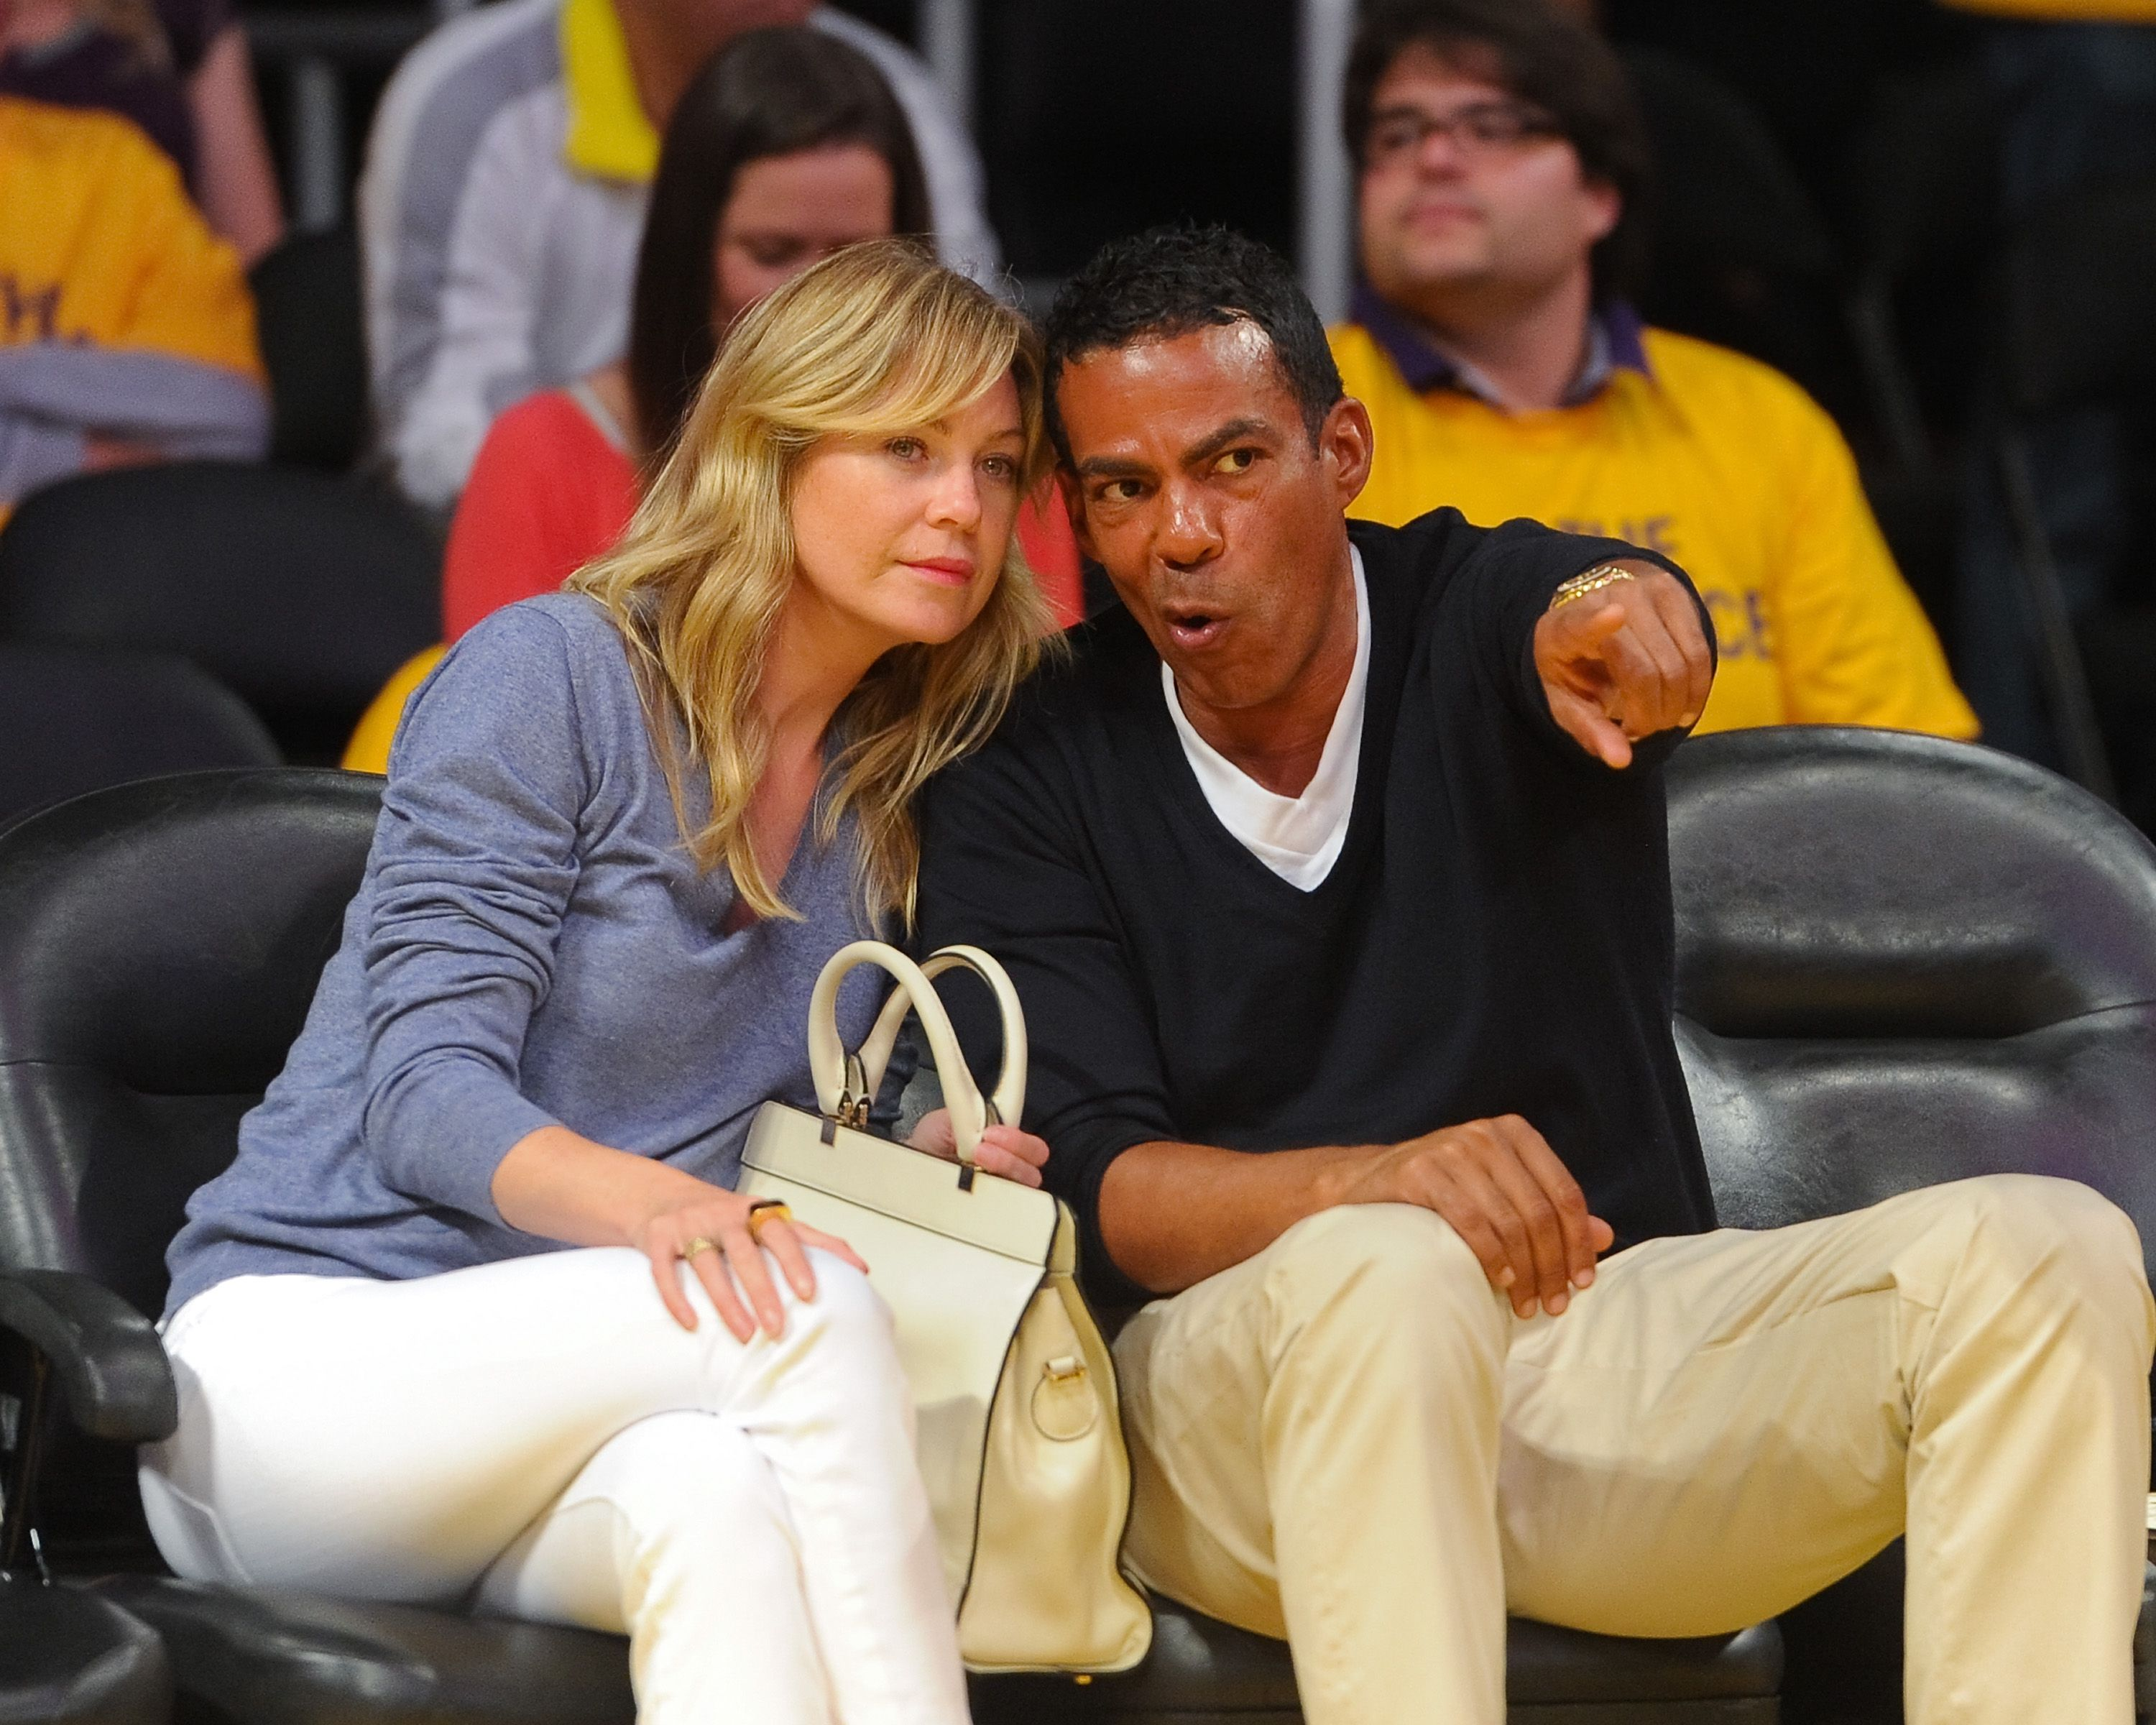 Ellen Pompeo and husband Chris Ivery at the Los Angeles Lakers and Oklamhoma City Thunder Game 3 in the 2012 NBA Playoffs on May 18, 2012 in Los Angeles, California | Photo: Getty Images